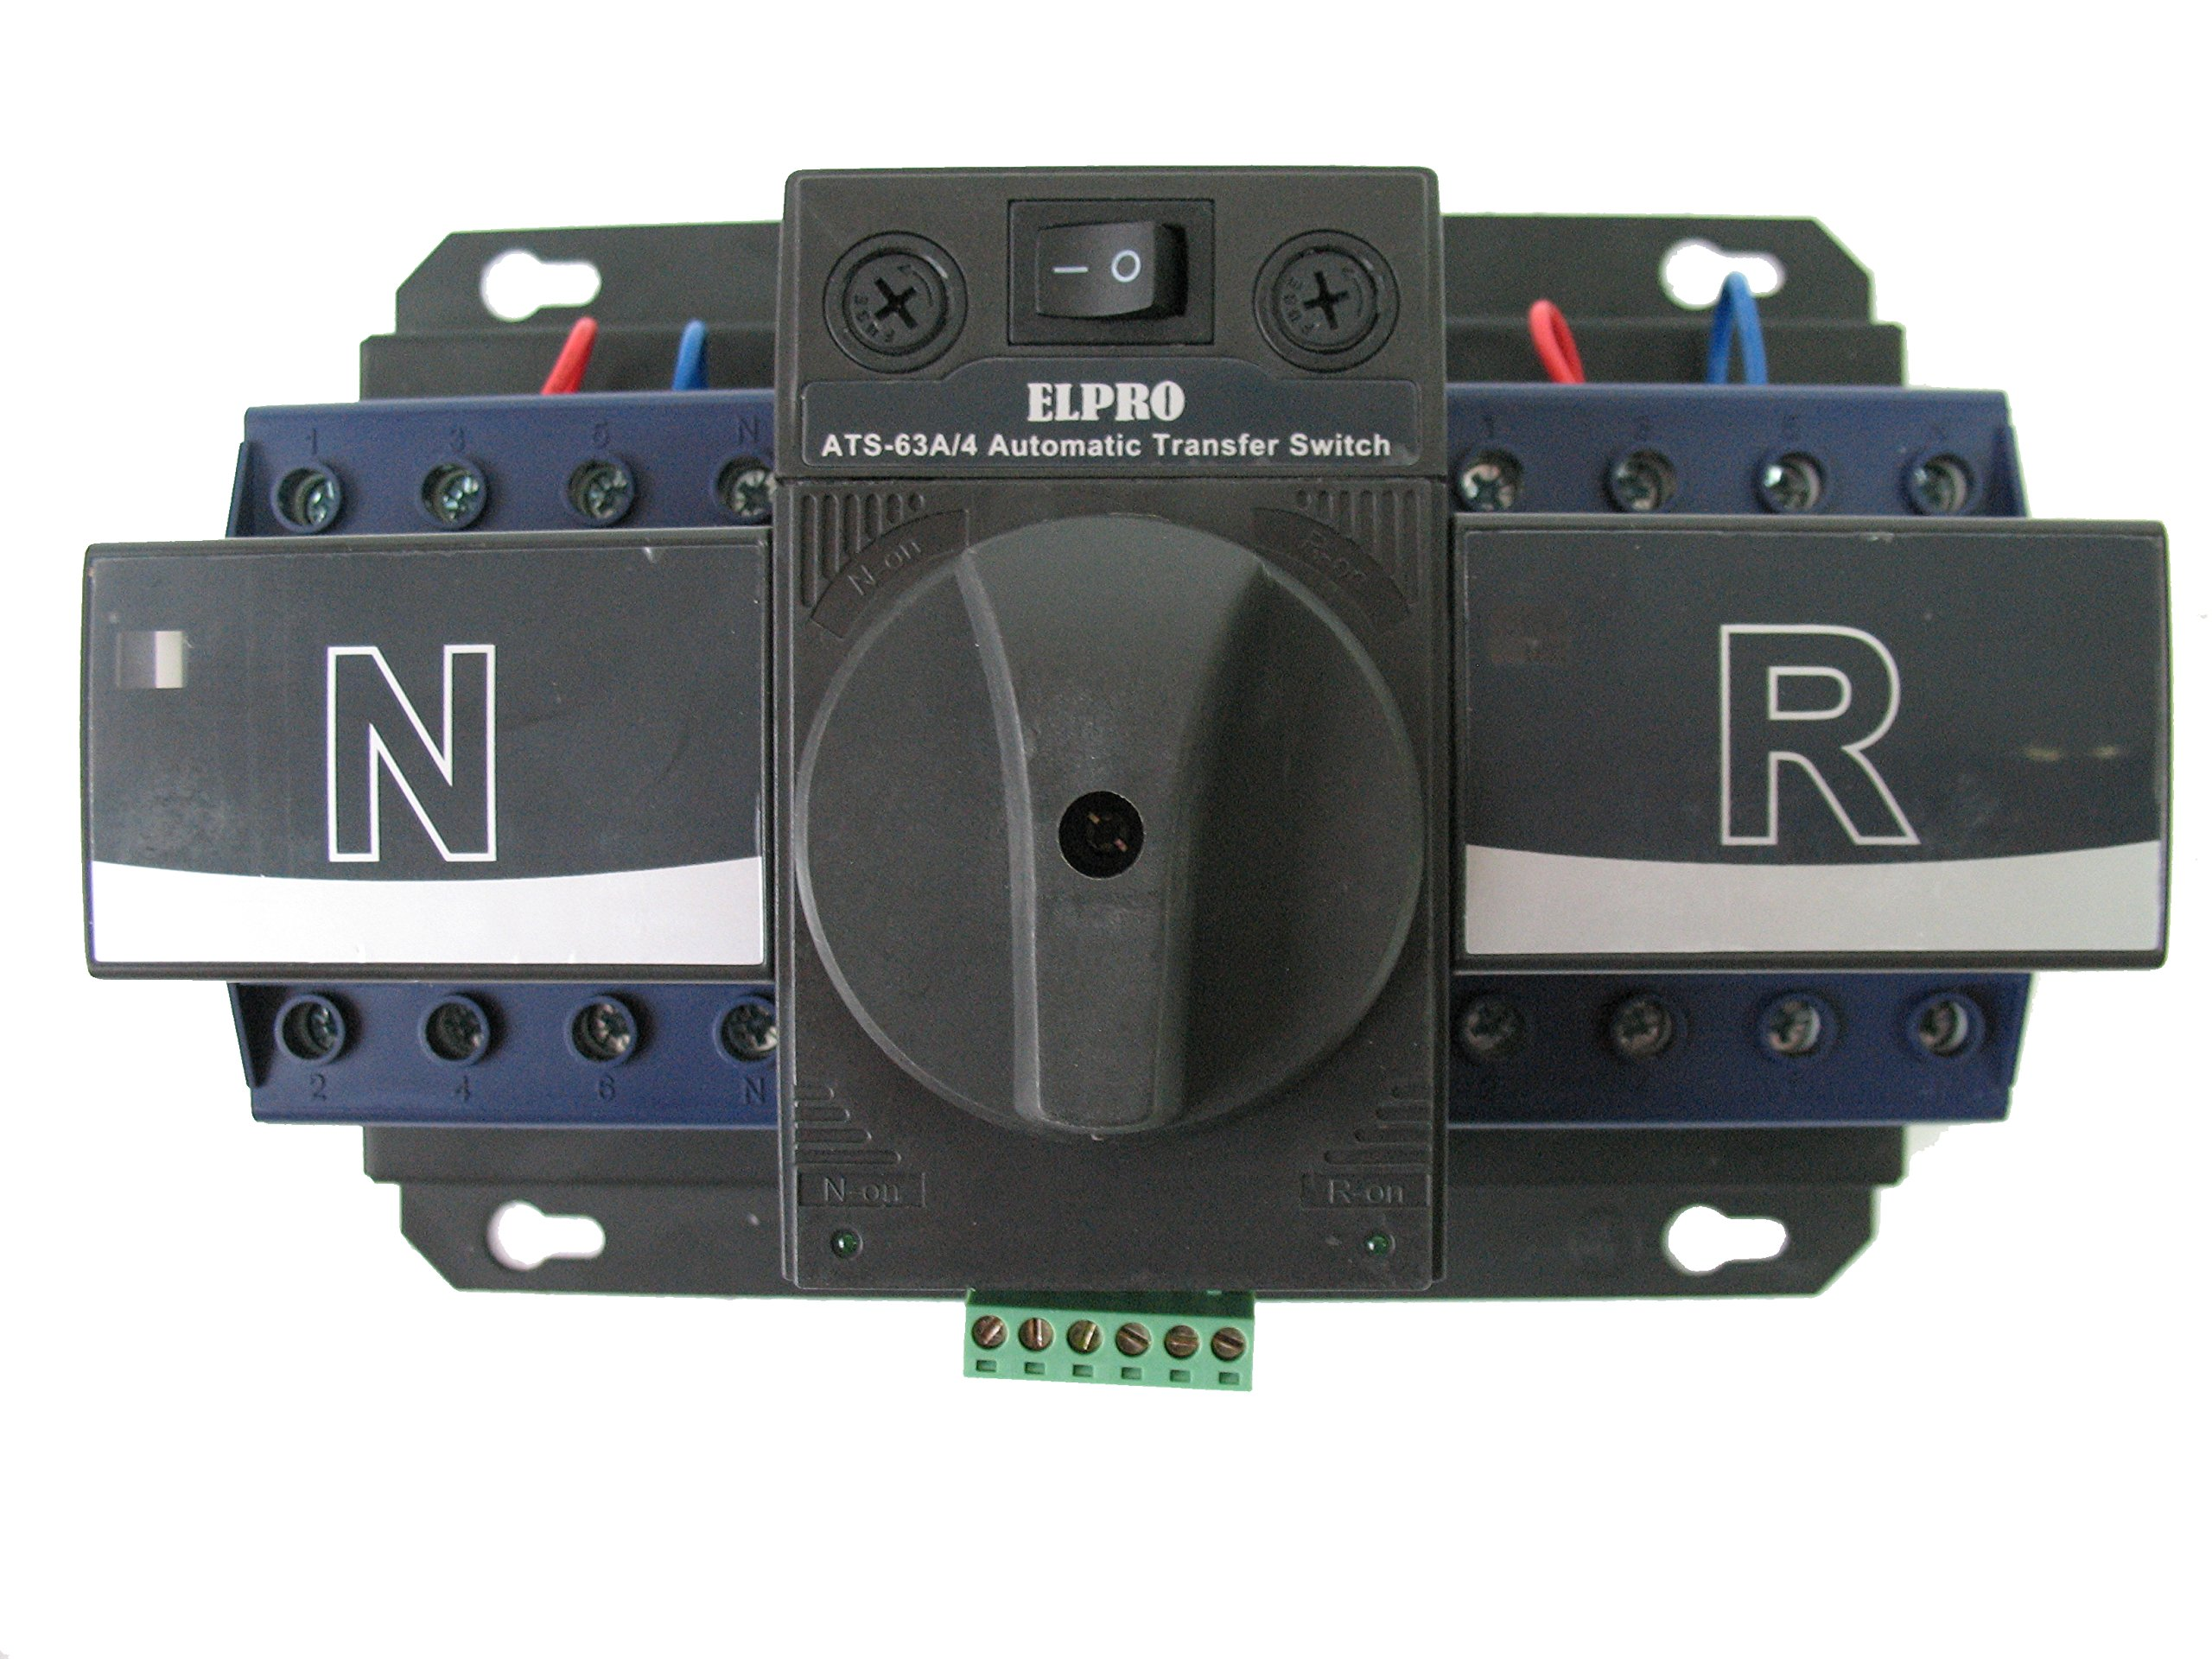 ELPRO ATS-63A, 120/208V 50-60Hz Automatic Transfer Changeover Switch, 2-3 Phase, 4P by ELPRO